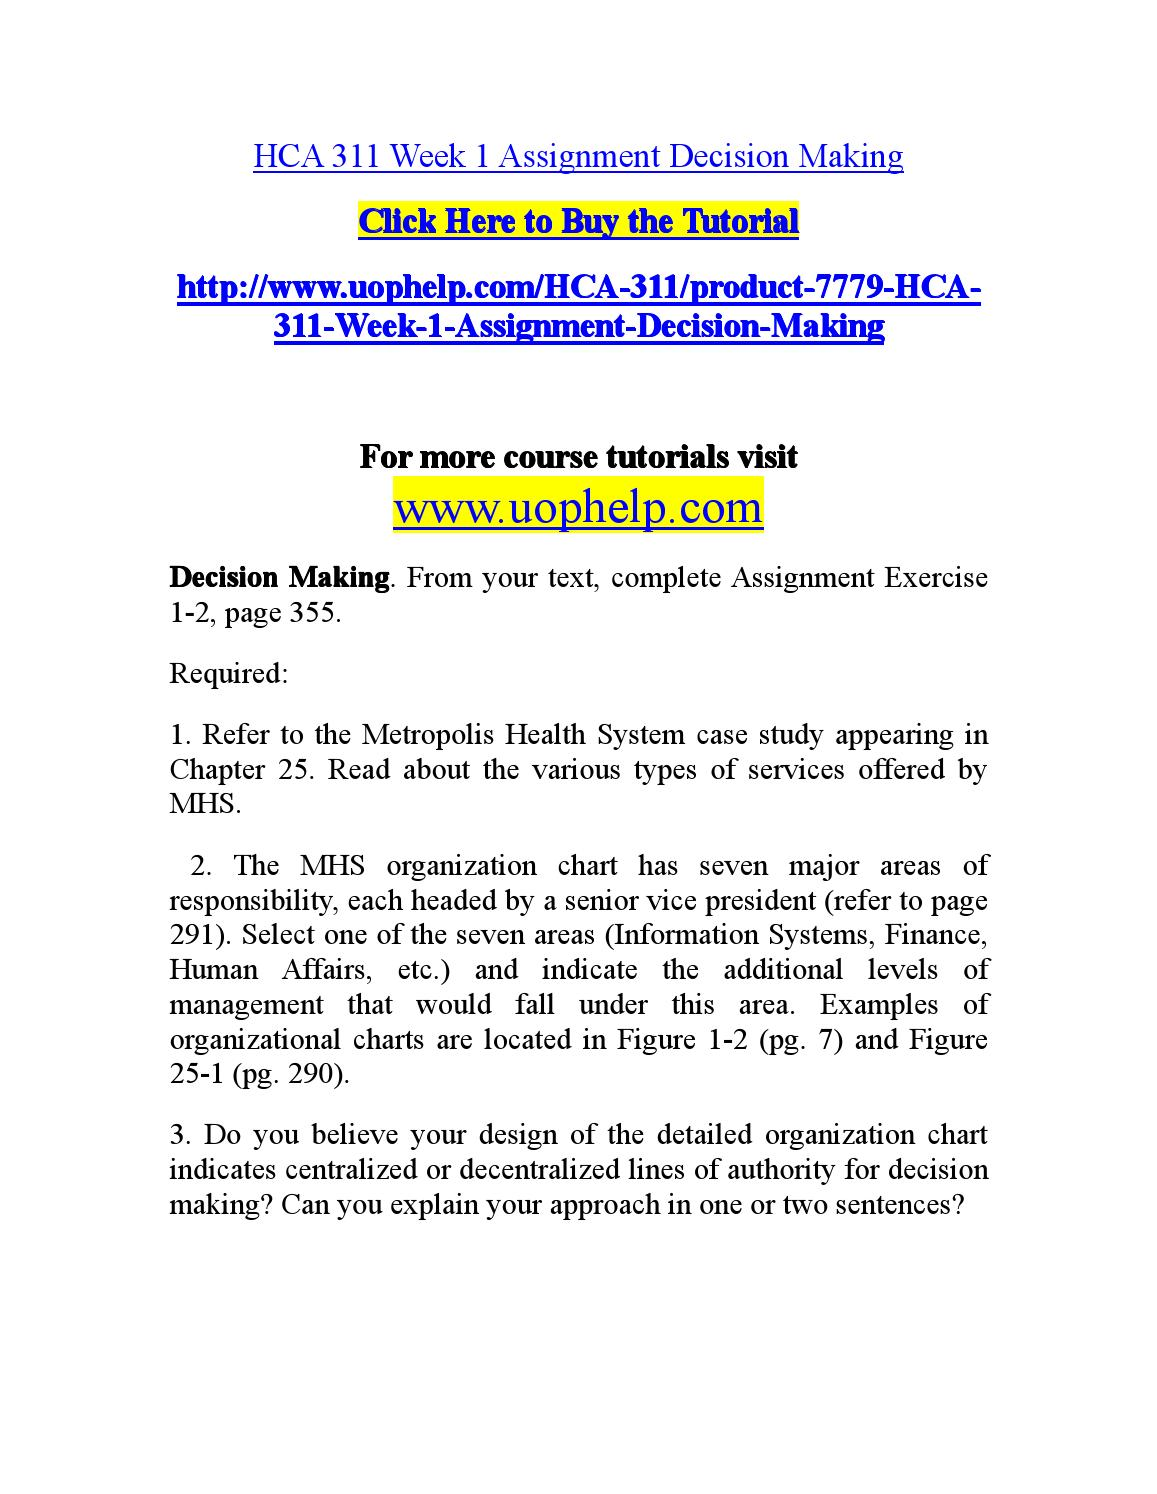 hca week one mhs assignment Can you explain your approach in one or two sentences  hca 311 week 3 assignment mhs analysis $1000 quick view add to cart hca 311 week 4 assignment operating .